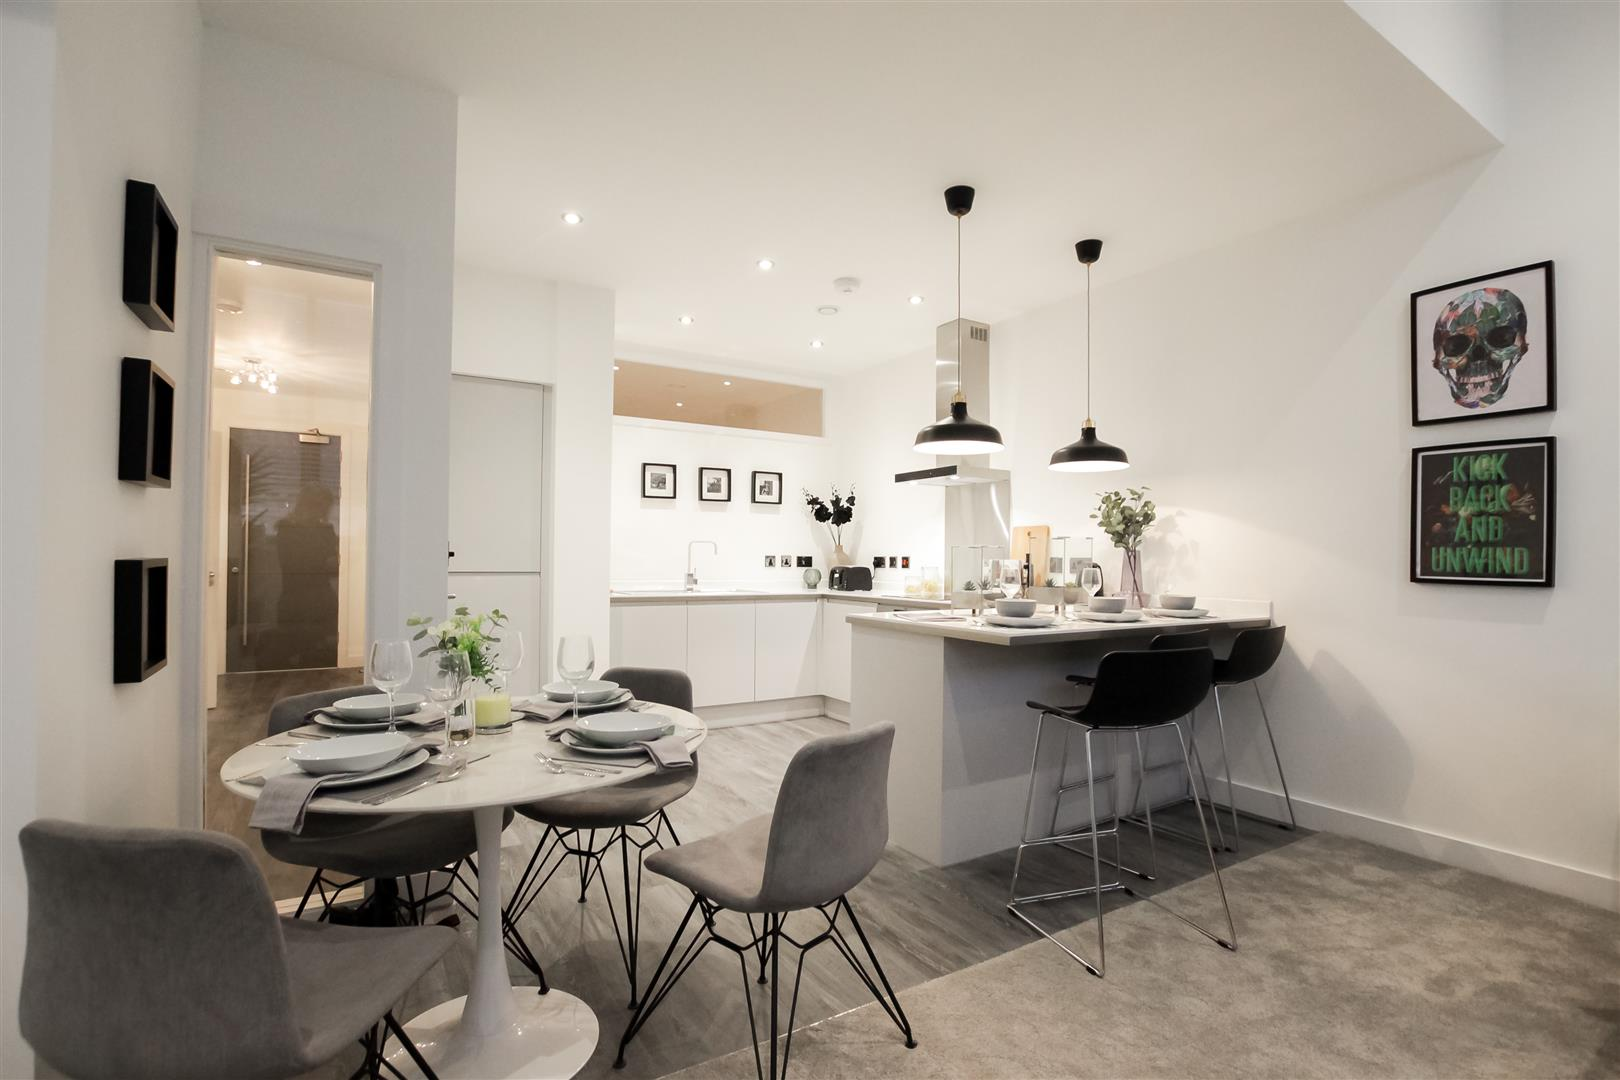 2 Bedroom Apartment For Sale - IMG_2052 copy.jpg